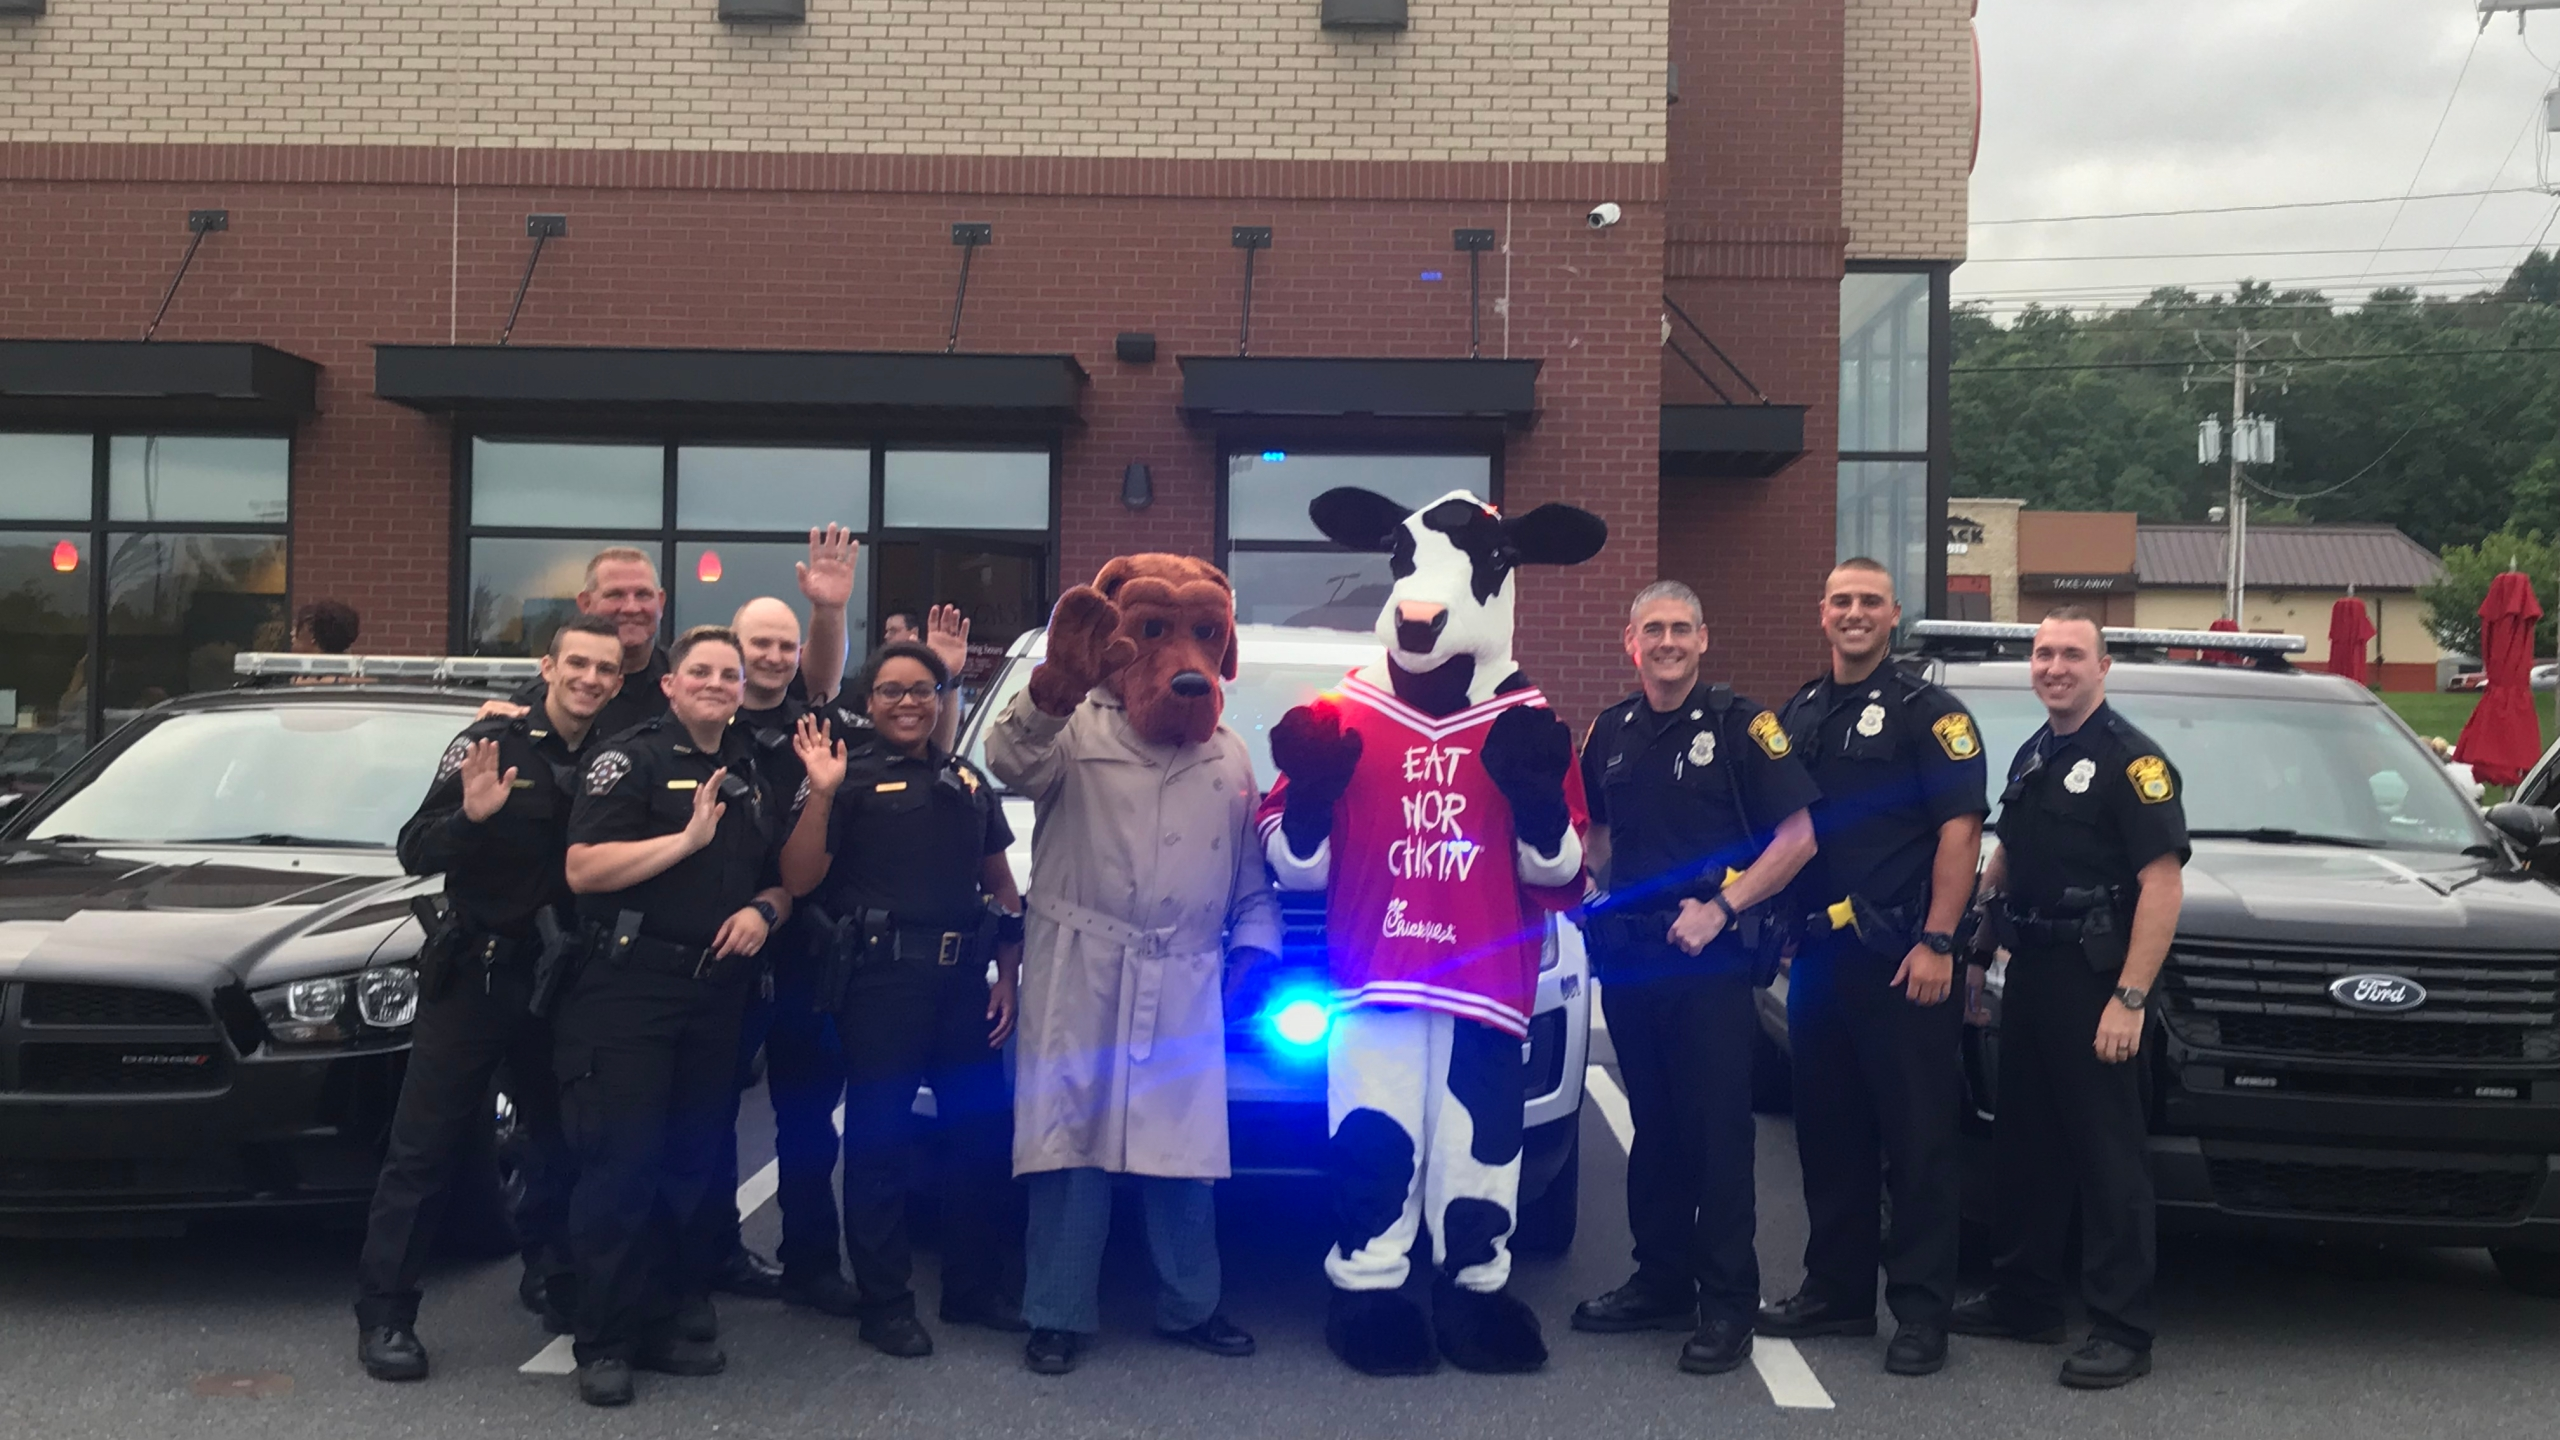 Local kids join law enforcement at Chick fil A_1534881730350.jpg.jpg